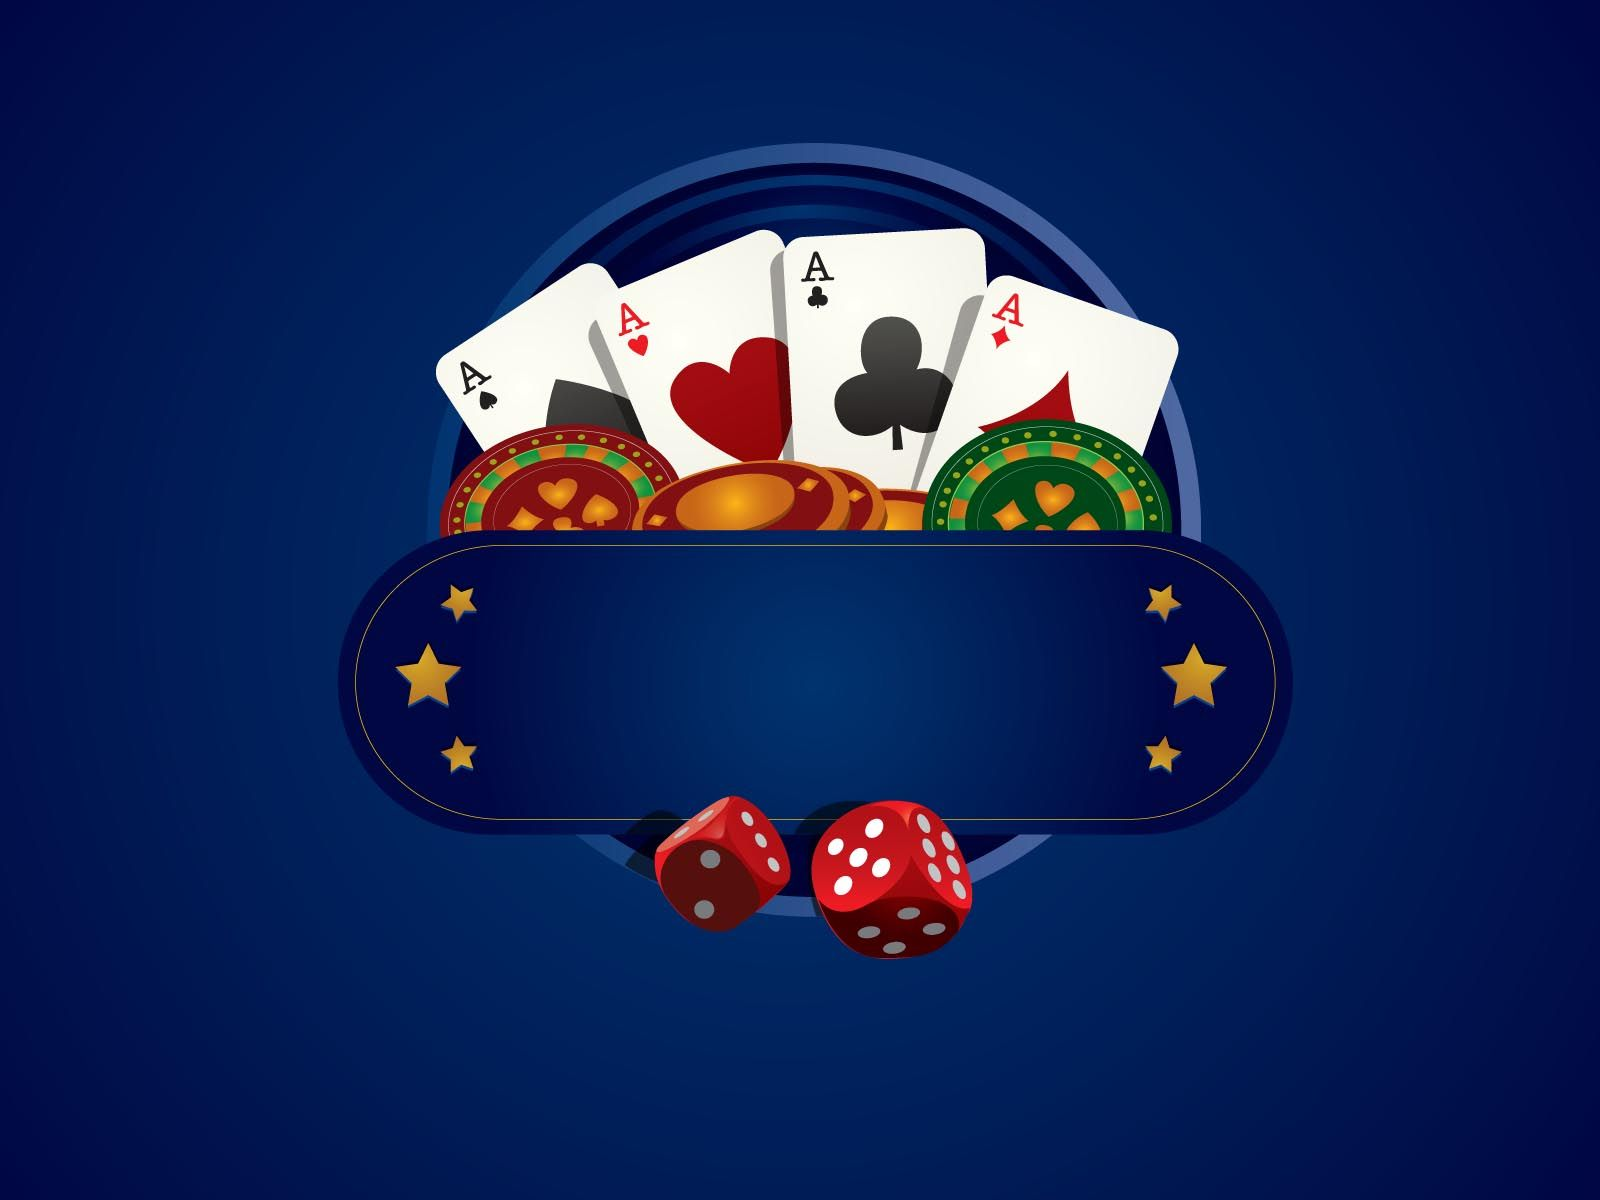 3 Kinds Of Casino: Which One Will Take Benefit Of Cash?